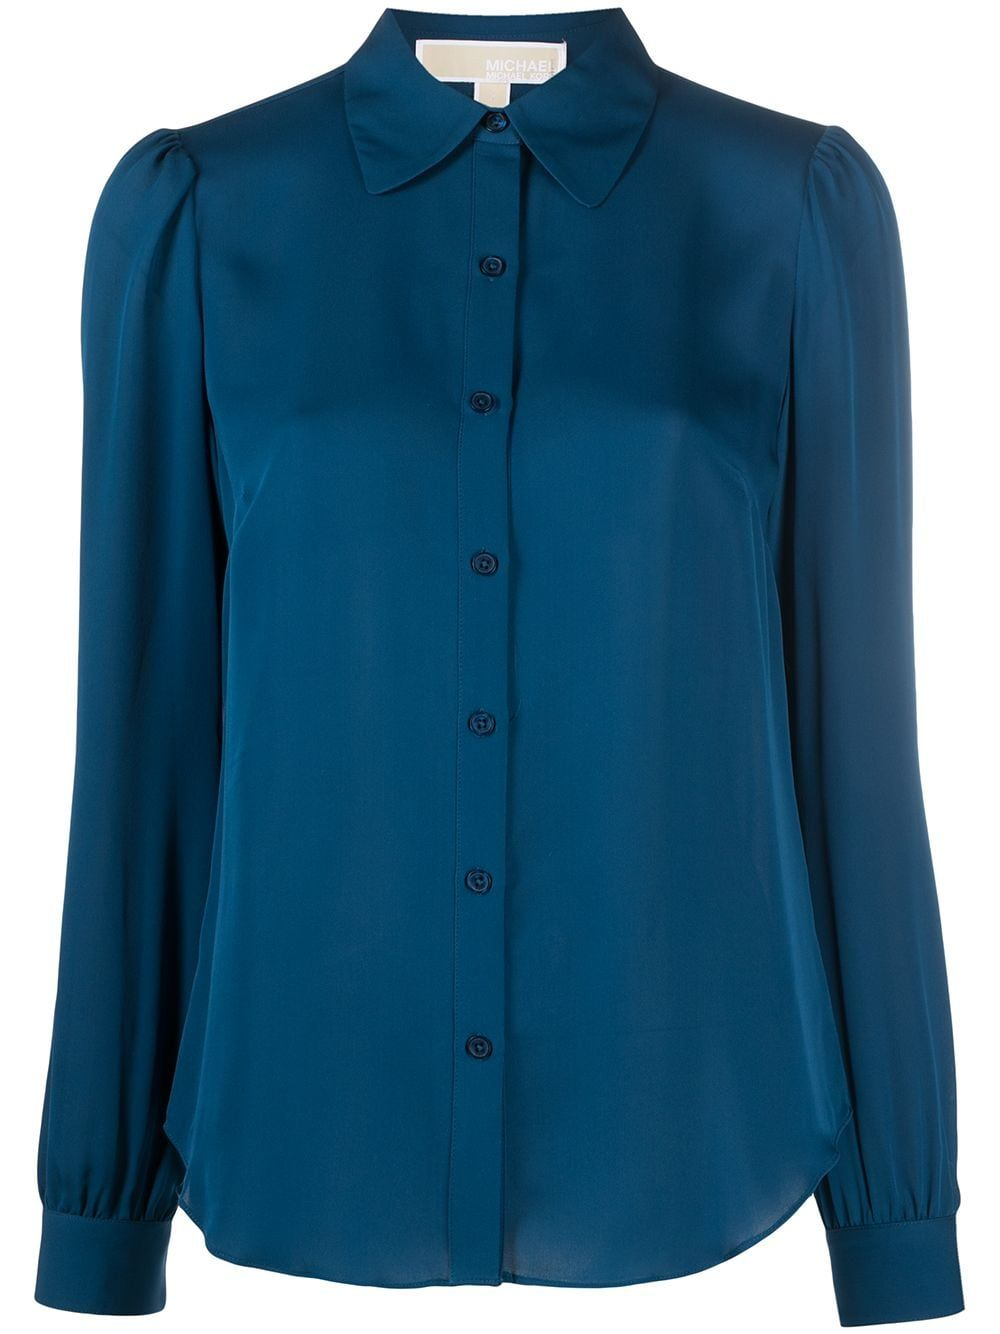 Michael Kors MICHAEL KORS WOMEN'S BLUE SILK SHIRT